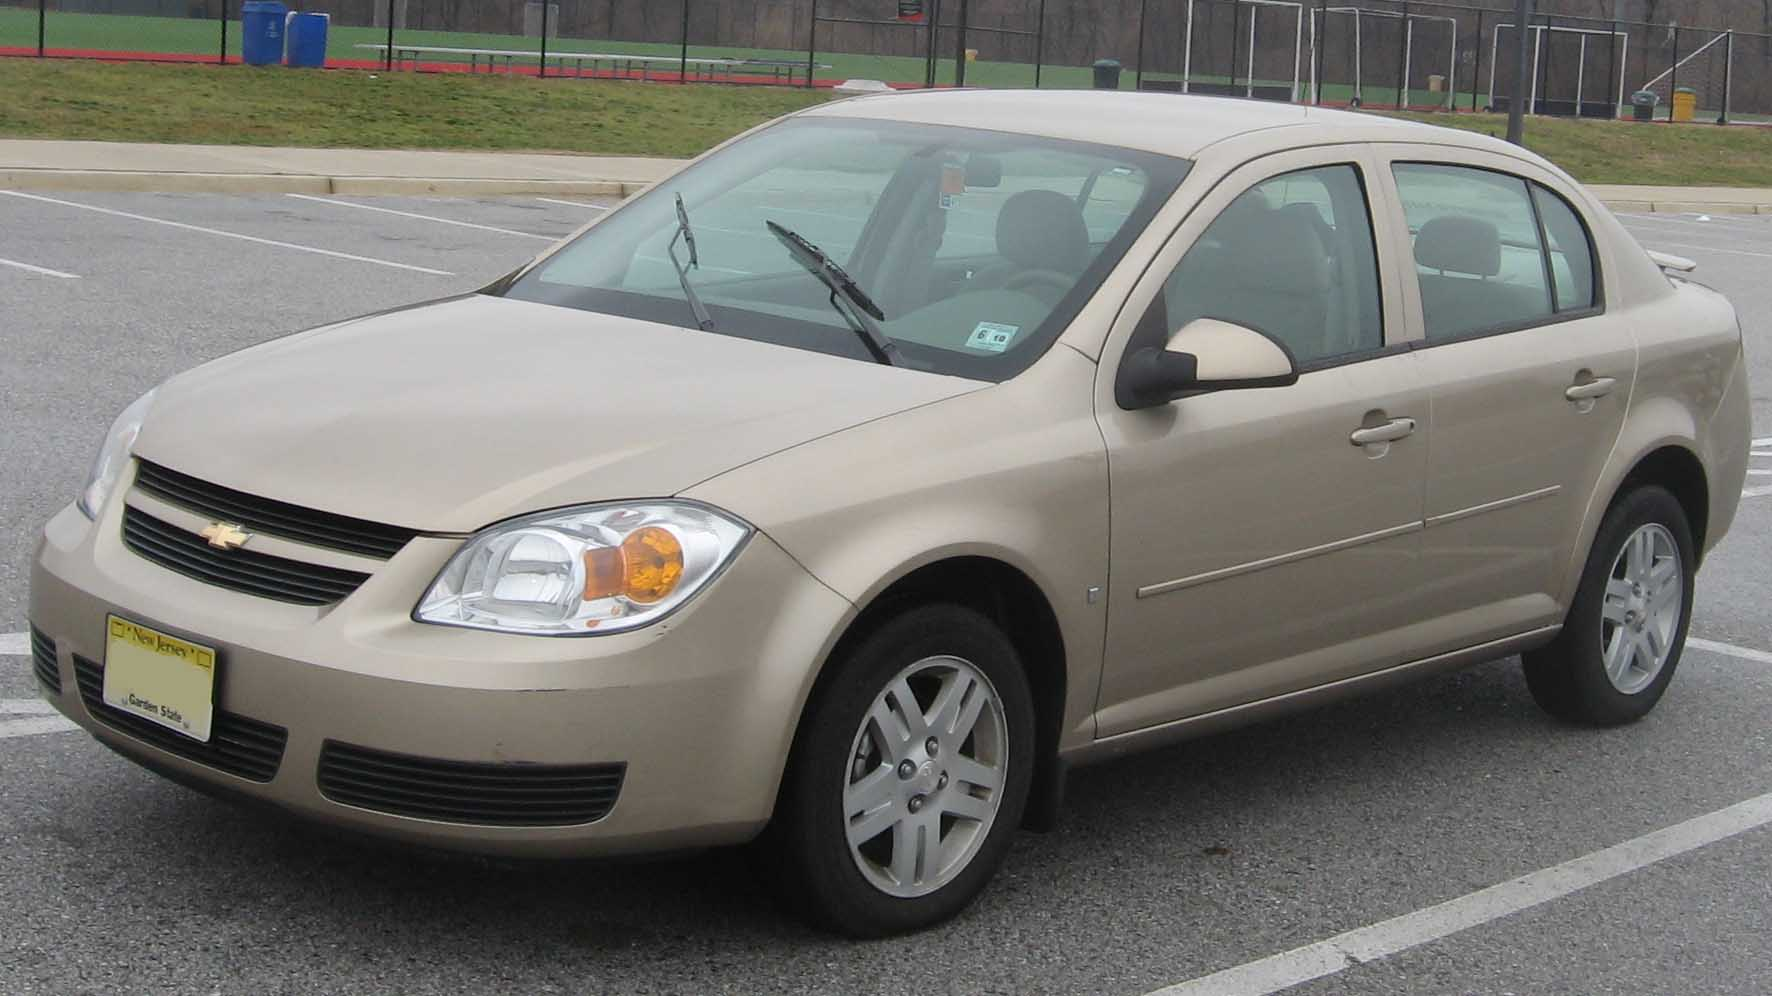 File:Chevrolet Cobalt LT sedan.jpg